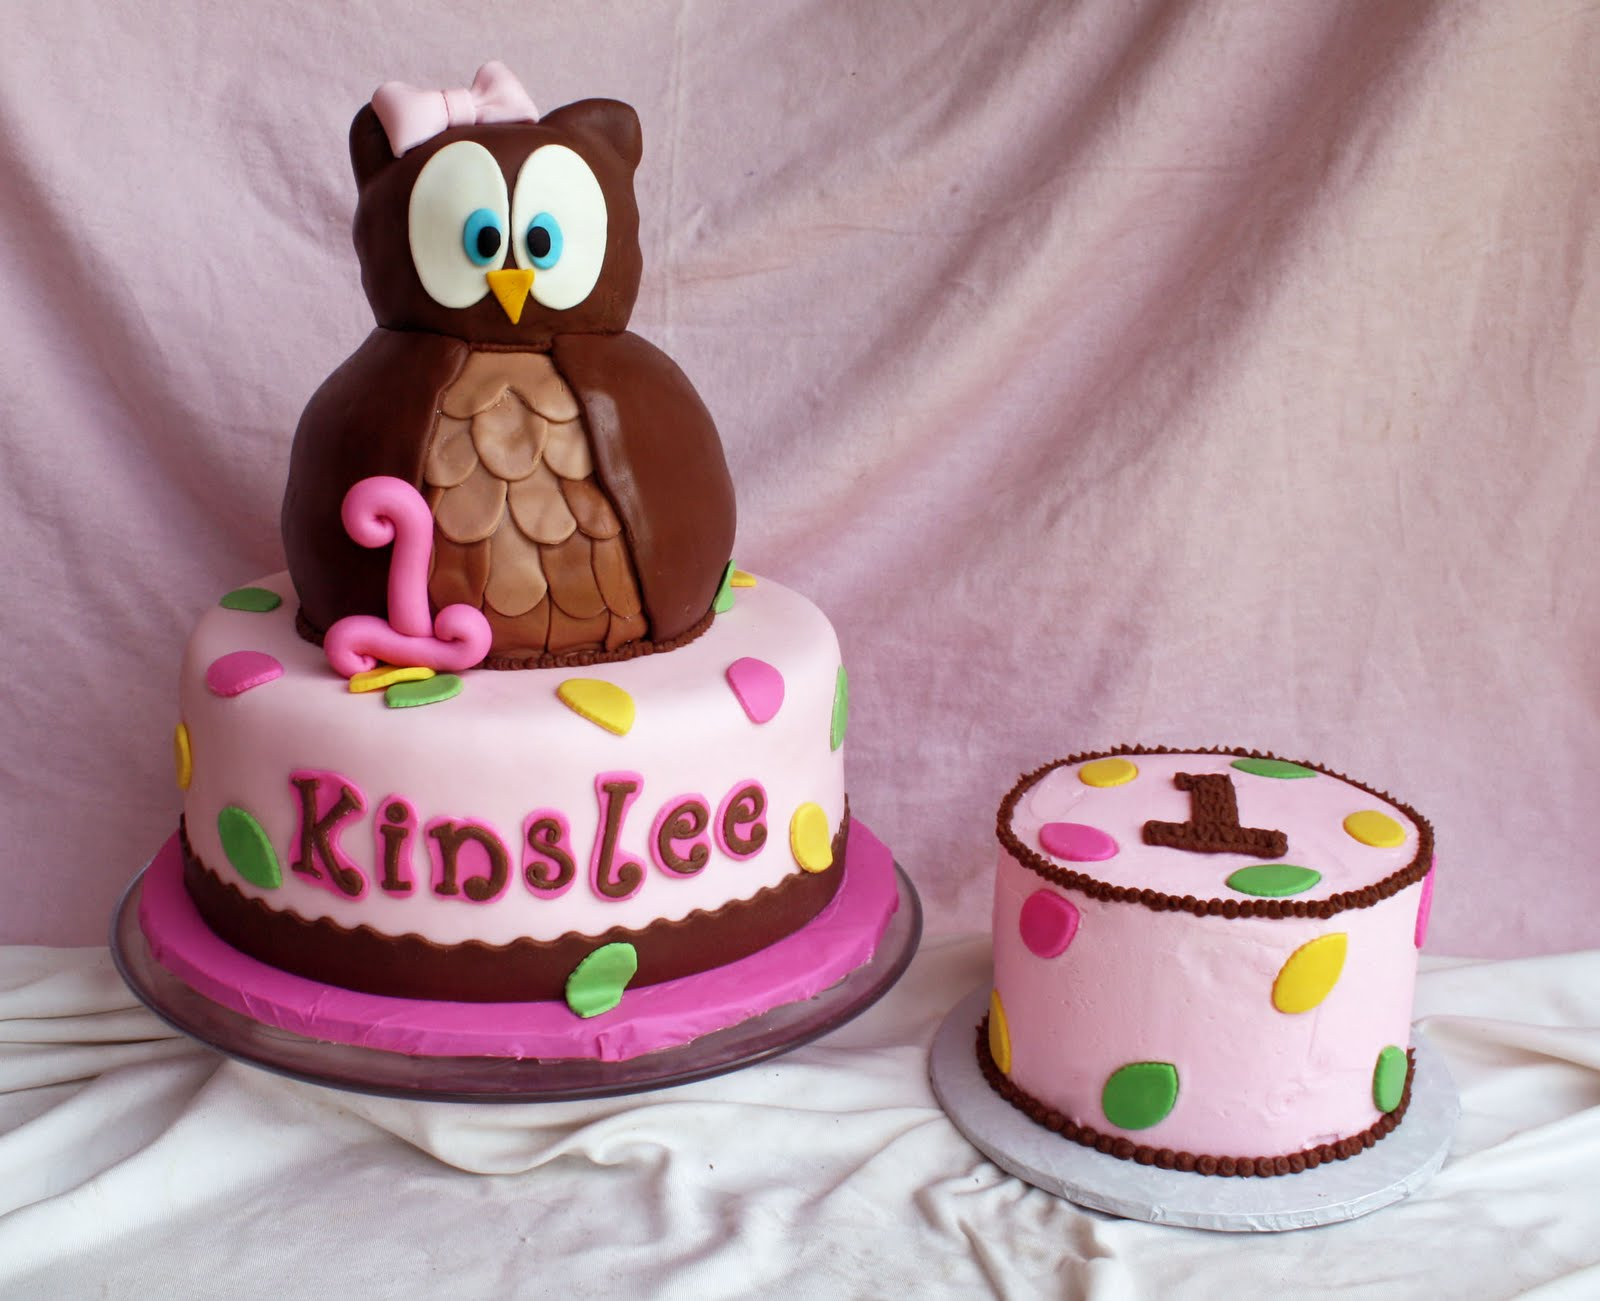 Pleasing Look Whoos 1 Owl Birthday Cake Smash Cake Funny Birthday Cards Online Alyptdamsfinfo